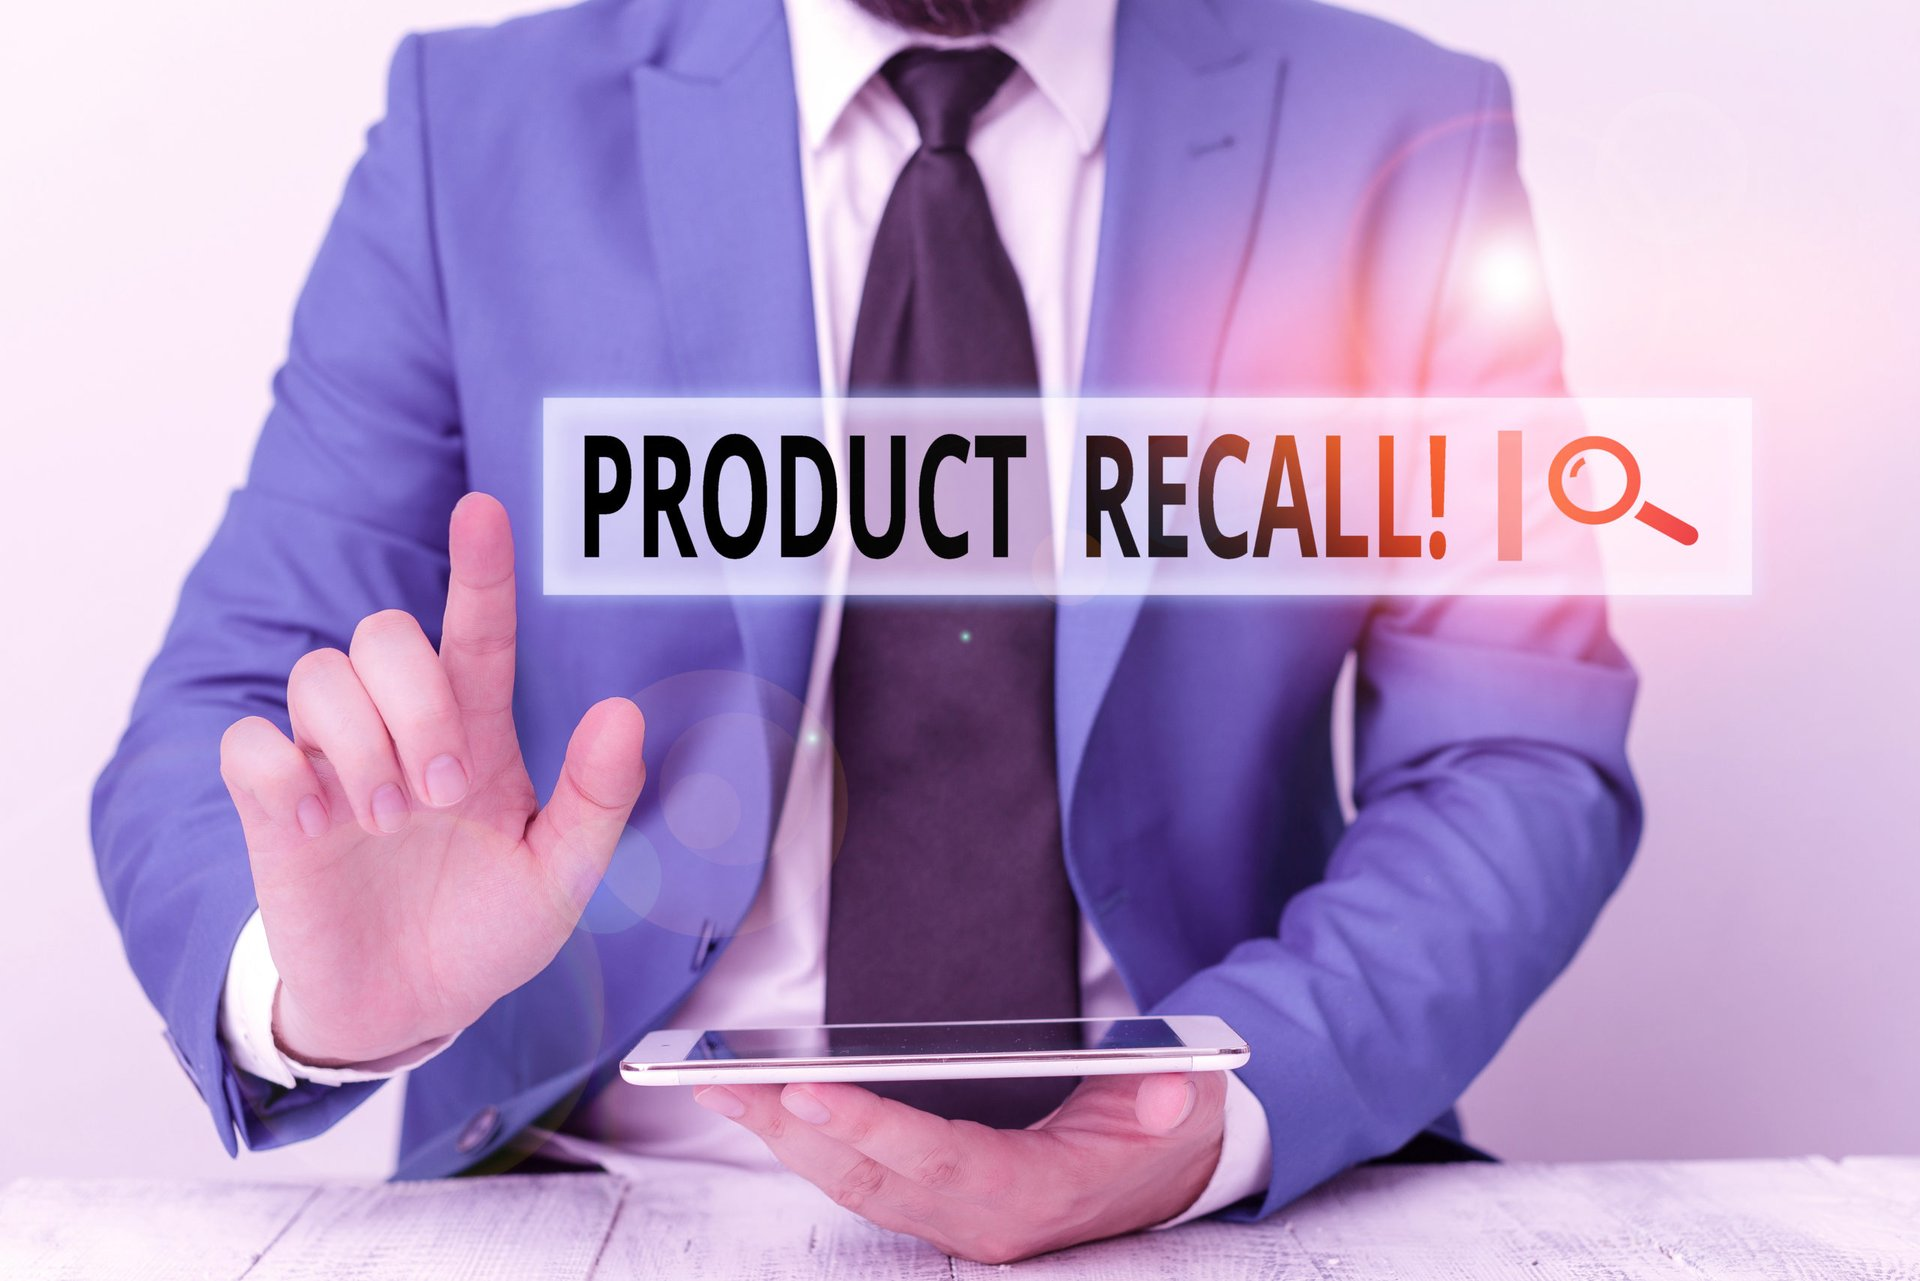 Man searching for product recalls online